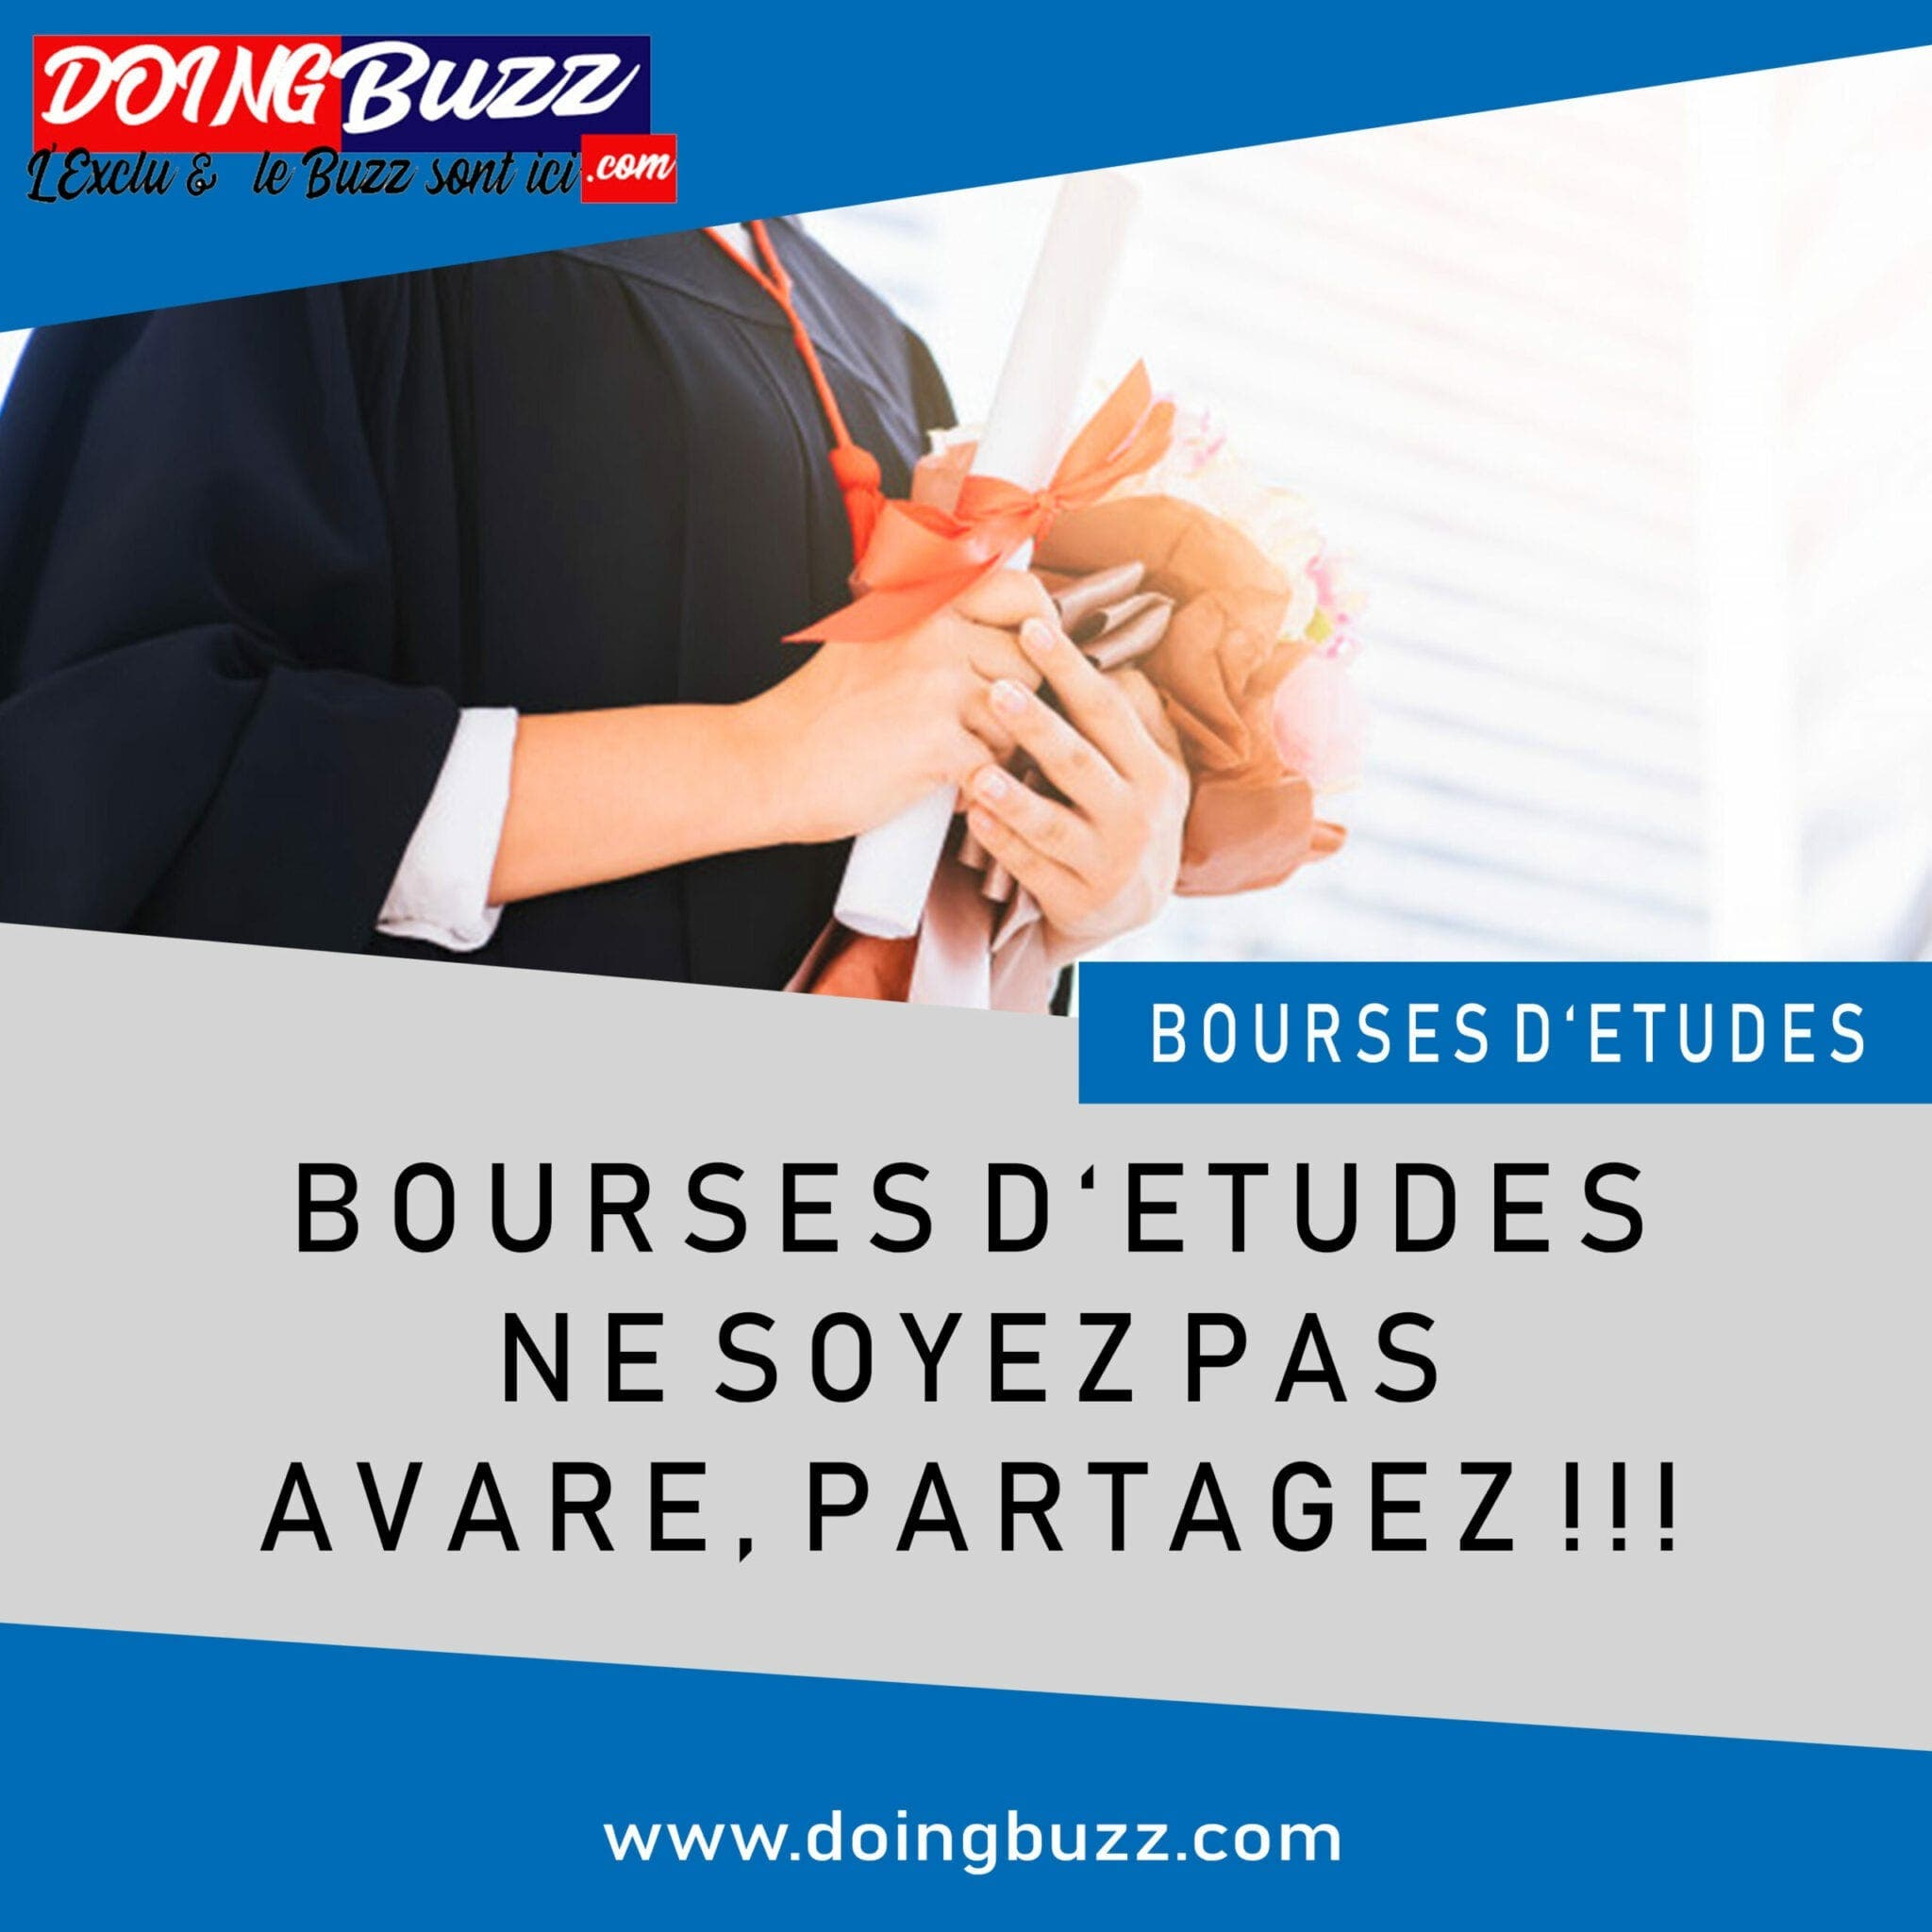 Bourse Master et doctorat en France à l'université du Maine